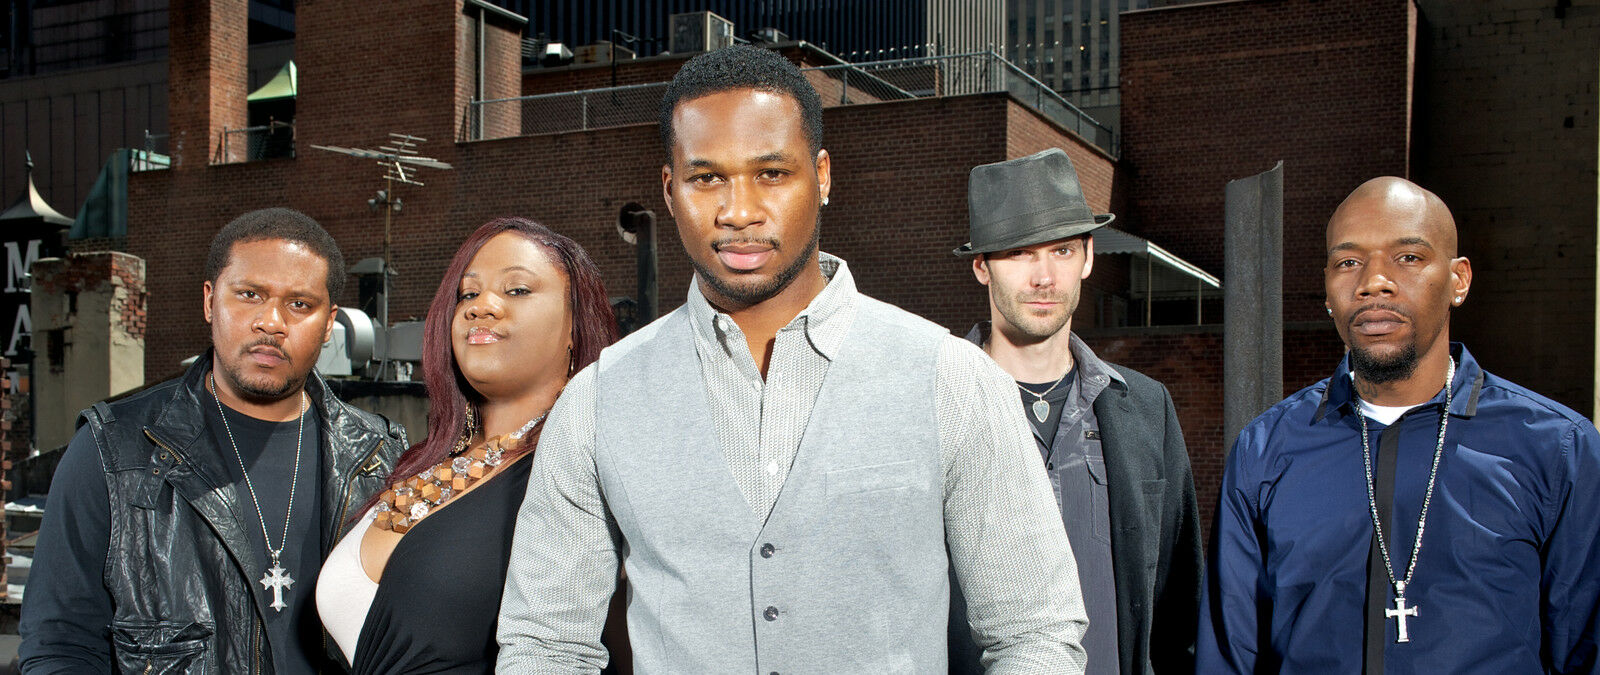 Robert Randolph And The Family Band Tickets (16+ Event)